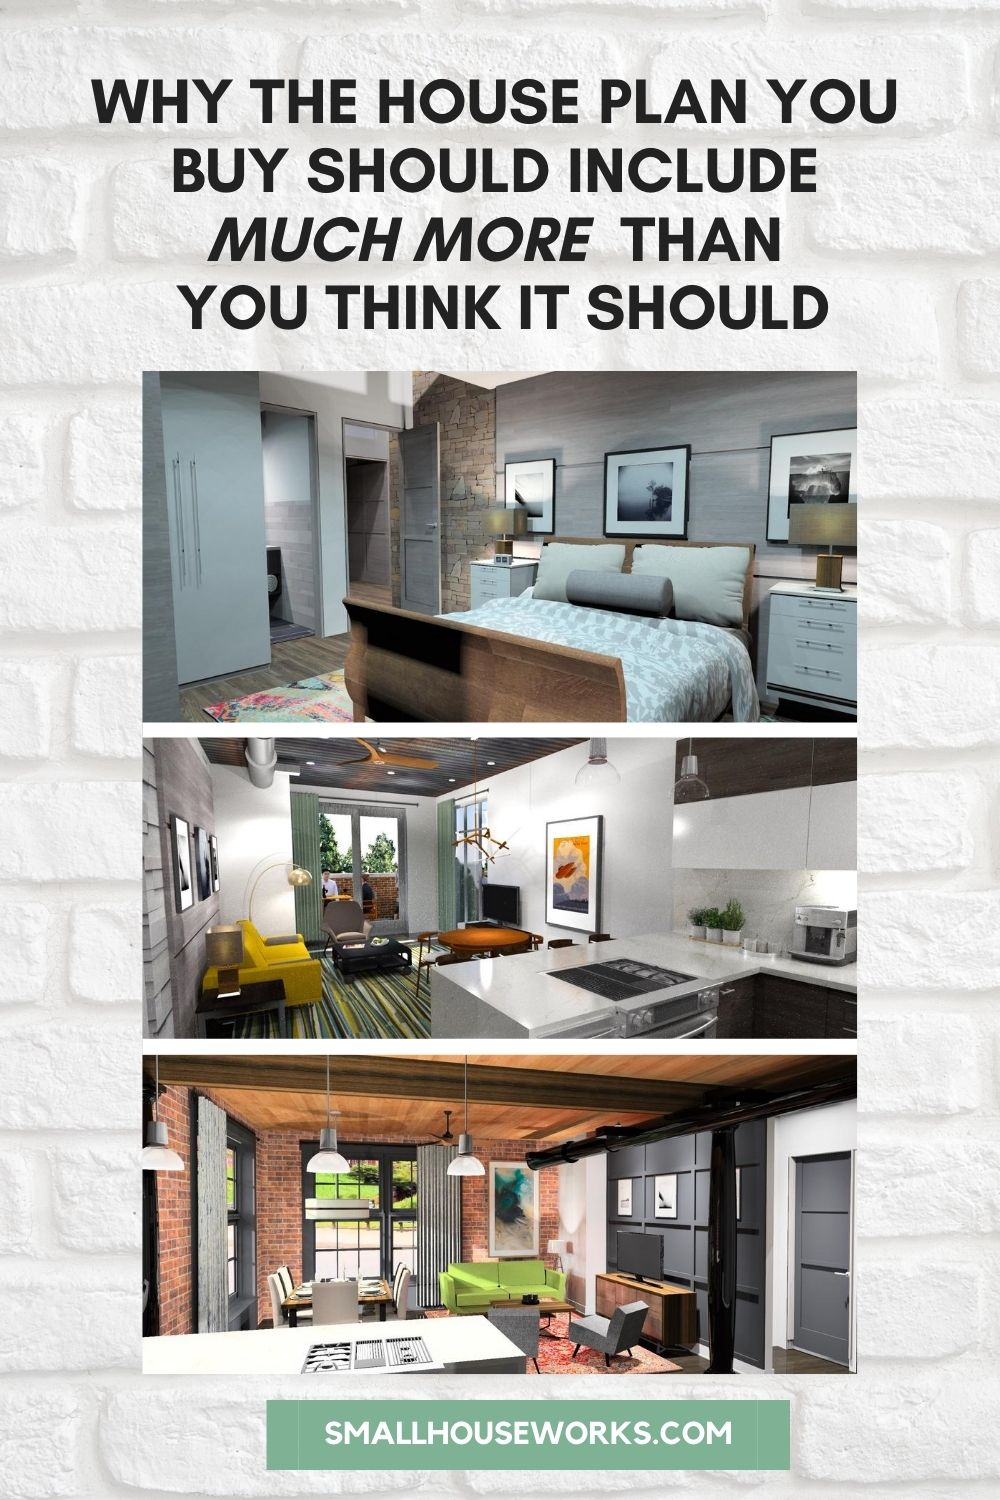 "Graphic titled ""Why the House Plan you buy should include much more than you think it should"". Images below text of interior rendering by Small House Works showing a sample Master Suite, Modern open concept interior rendering, and Modern Industrial open concept interior rendering. Text at bottom reads: smallhouseworks.com"